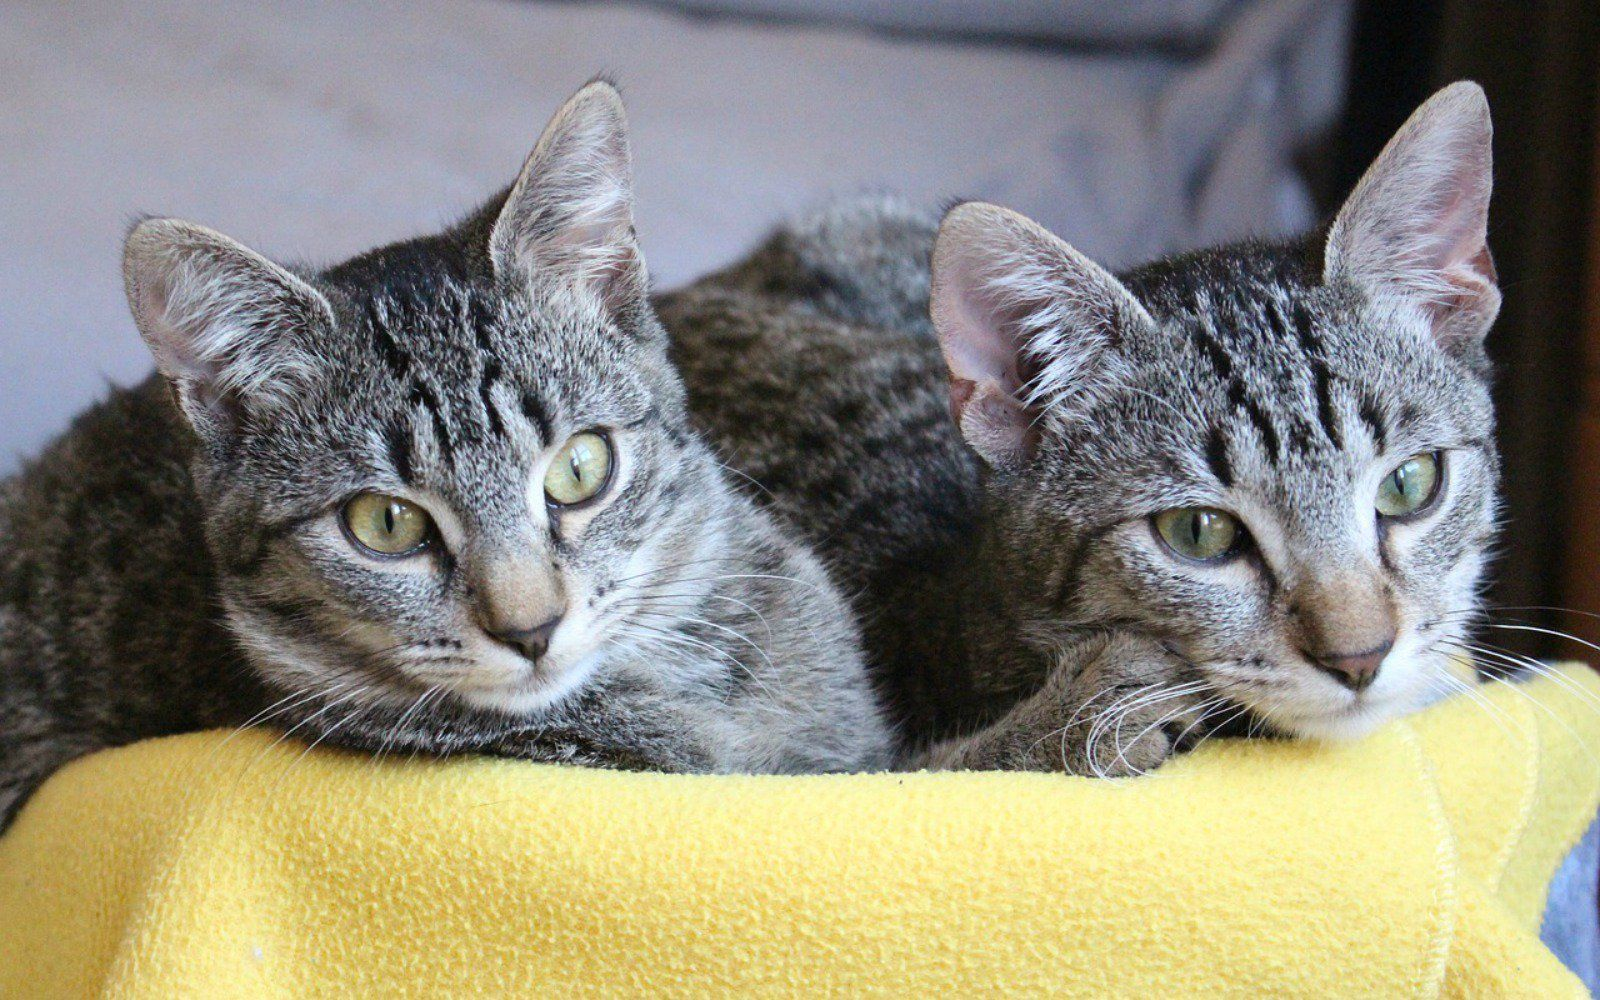 Does Your Cat Need a Friend? Benefits of Adopting a Second